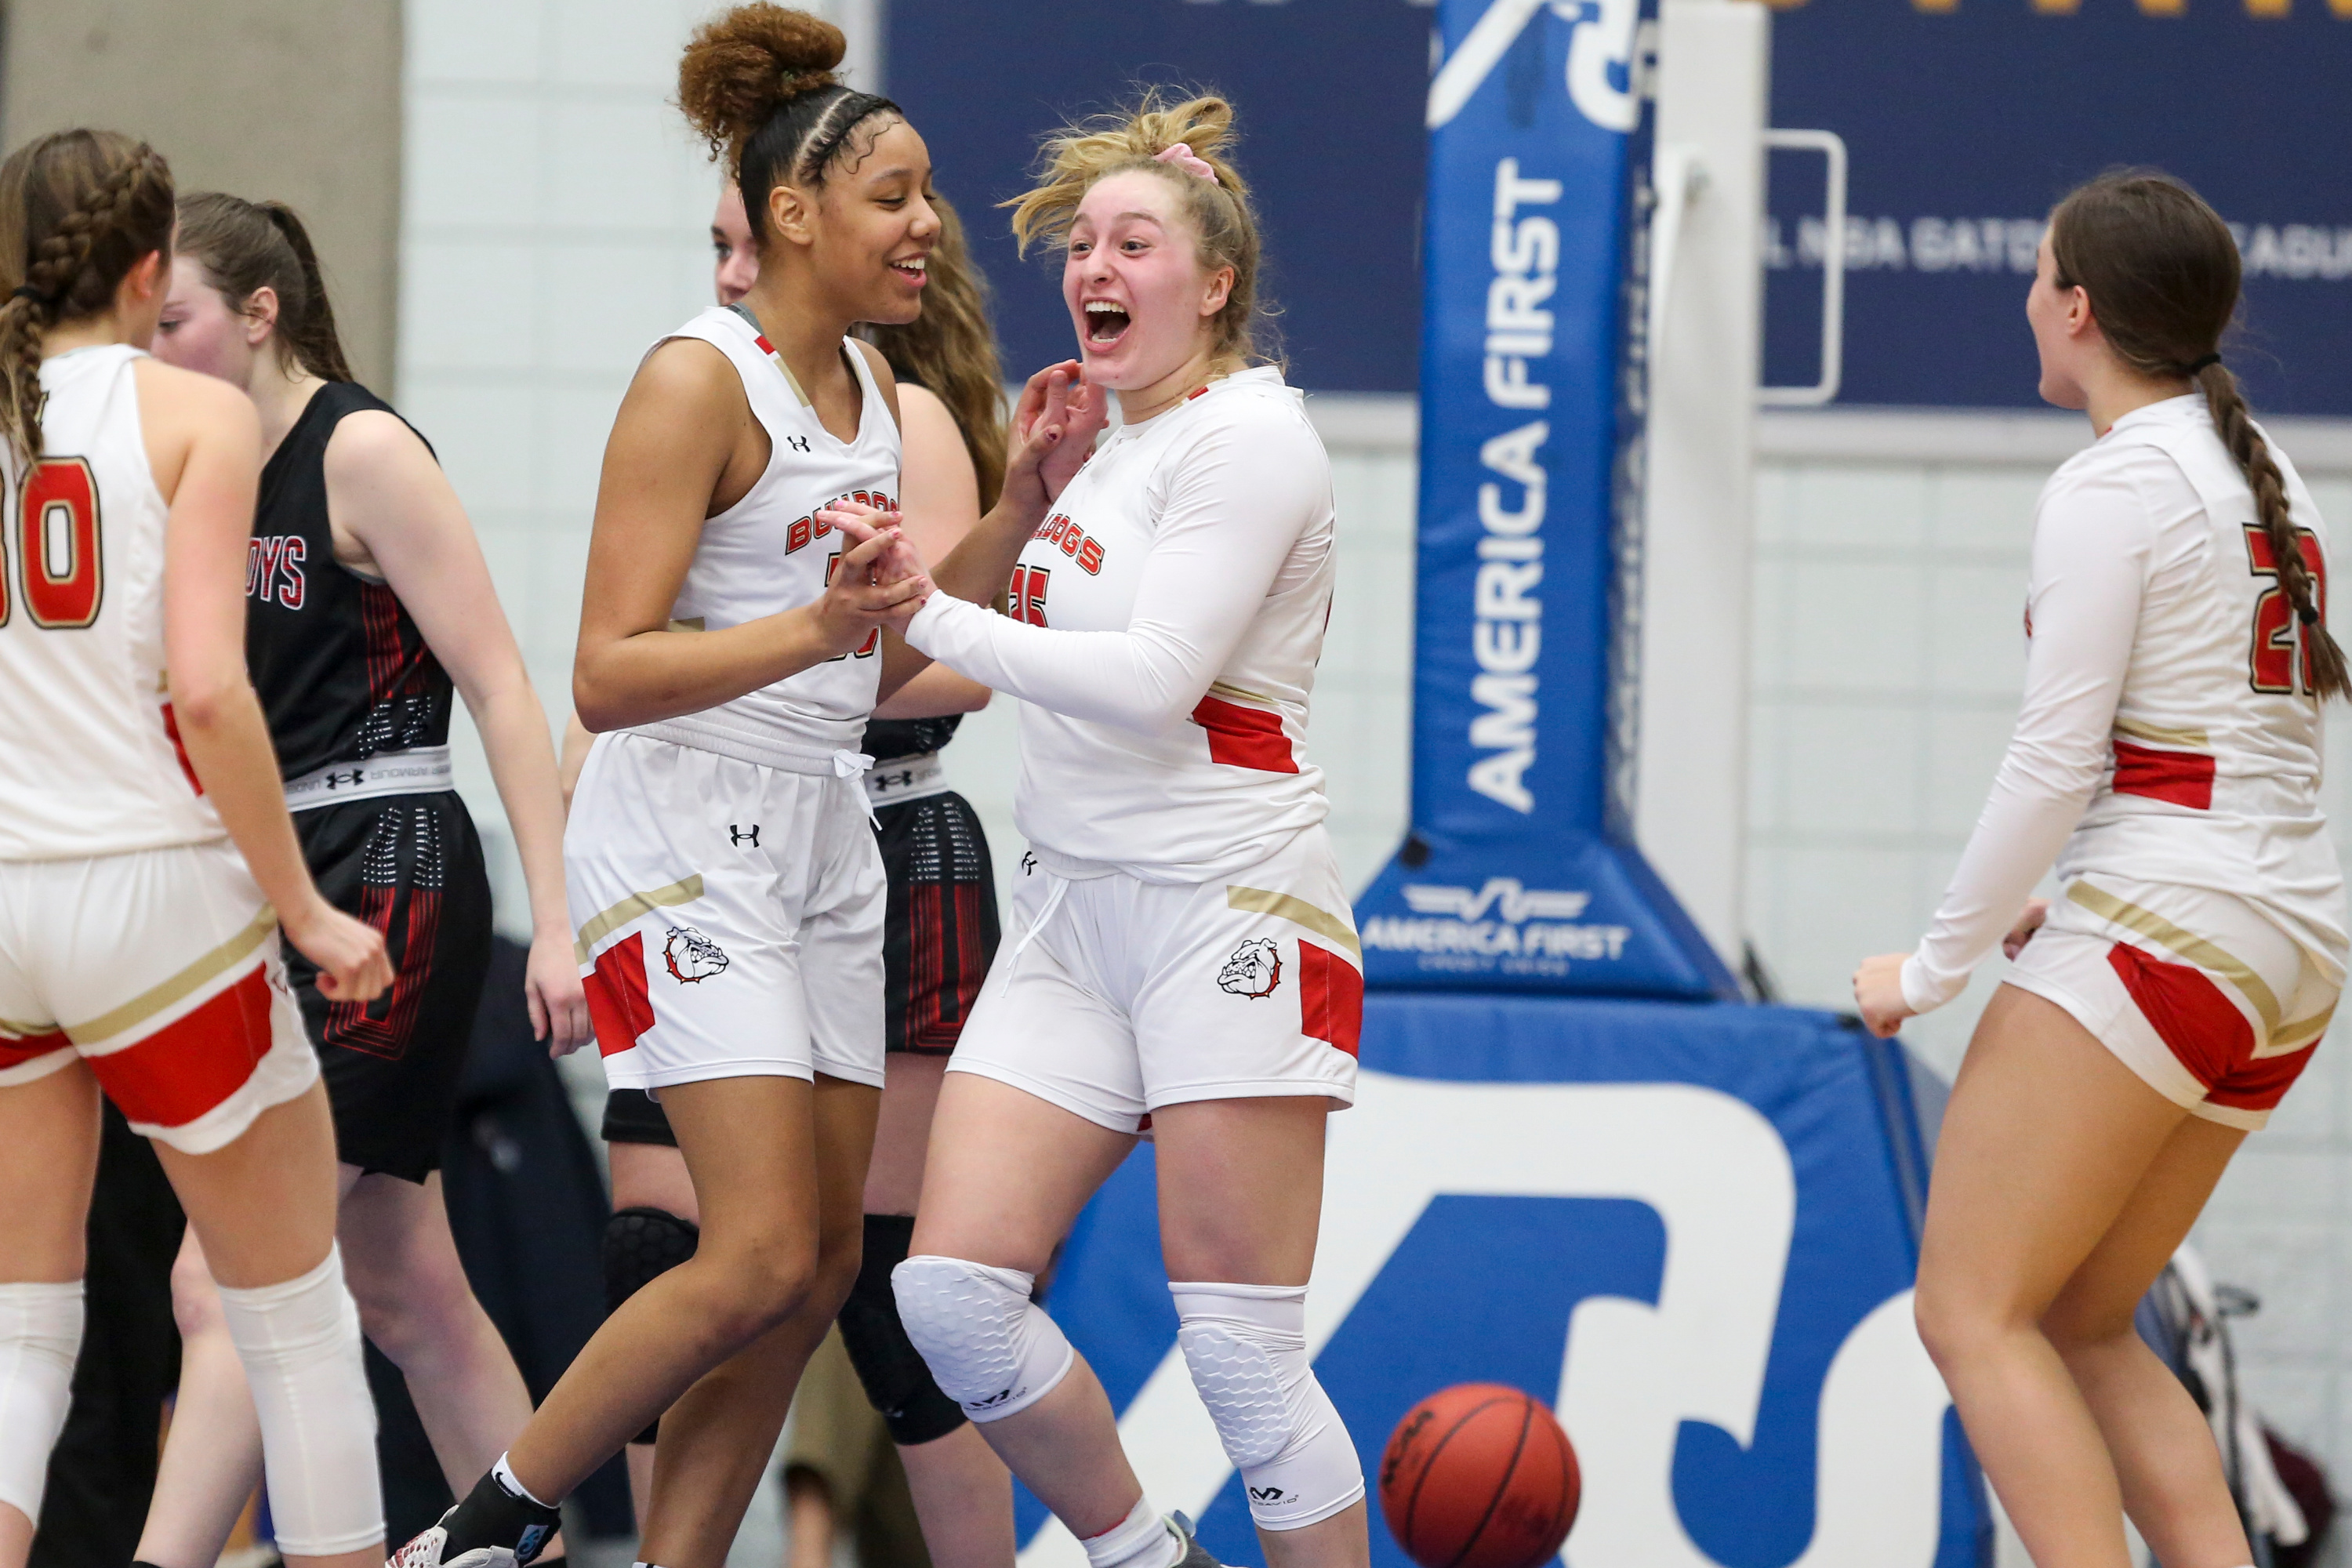 The Judge Memorial Bulldogs celebrate during the 3A girls basketball semifinals at the Lifetime Activities Center in Taylorsville on Friday, Feb. 21, 2020.